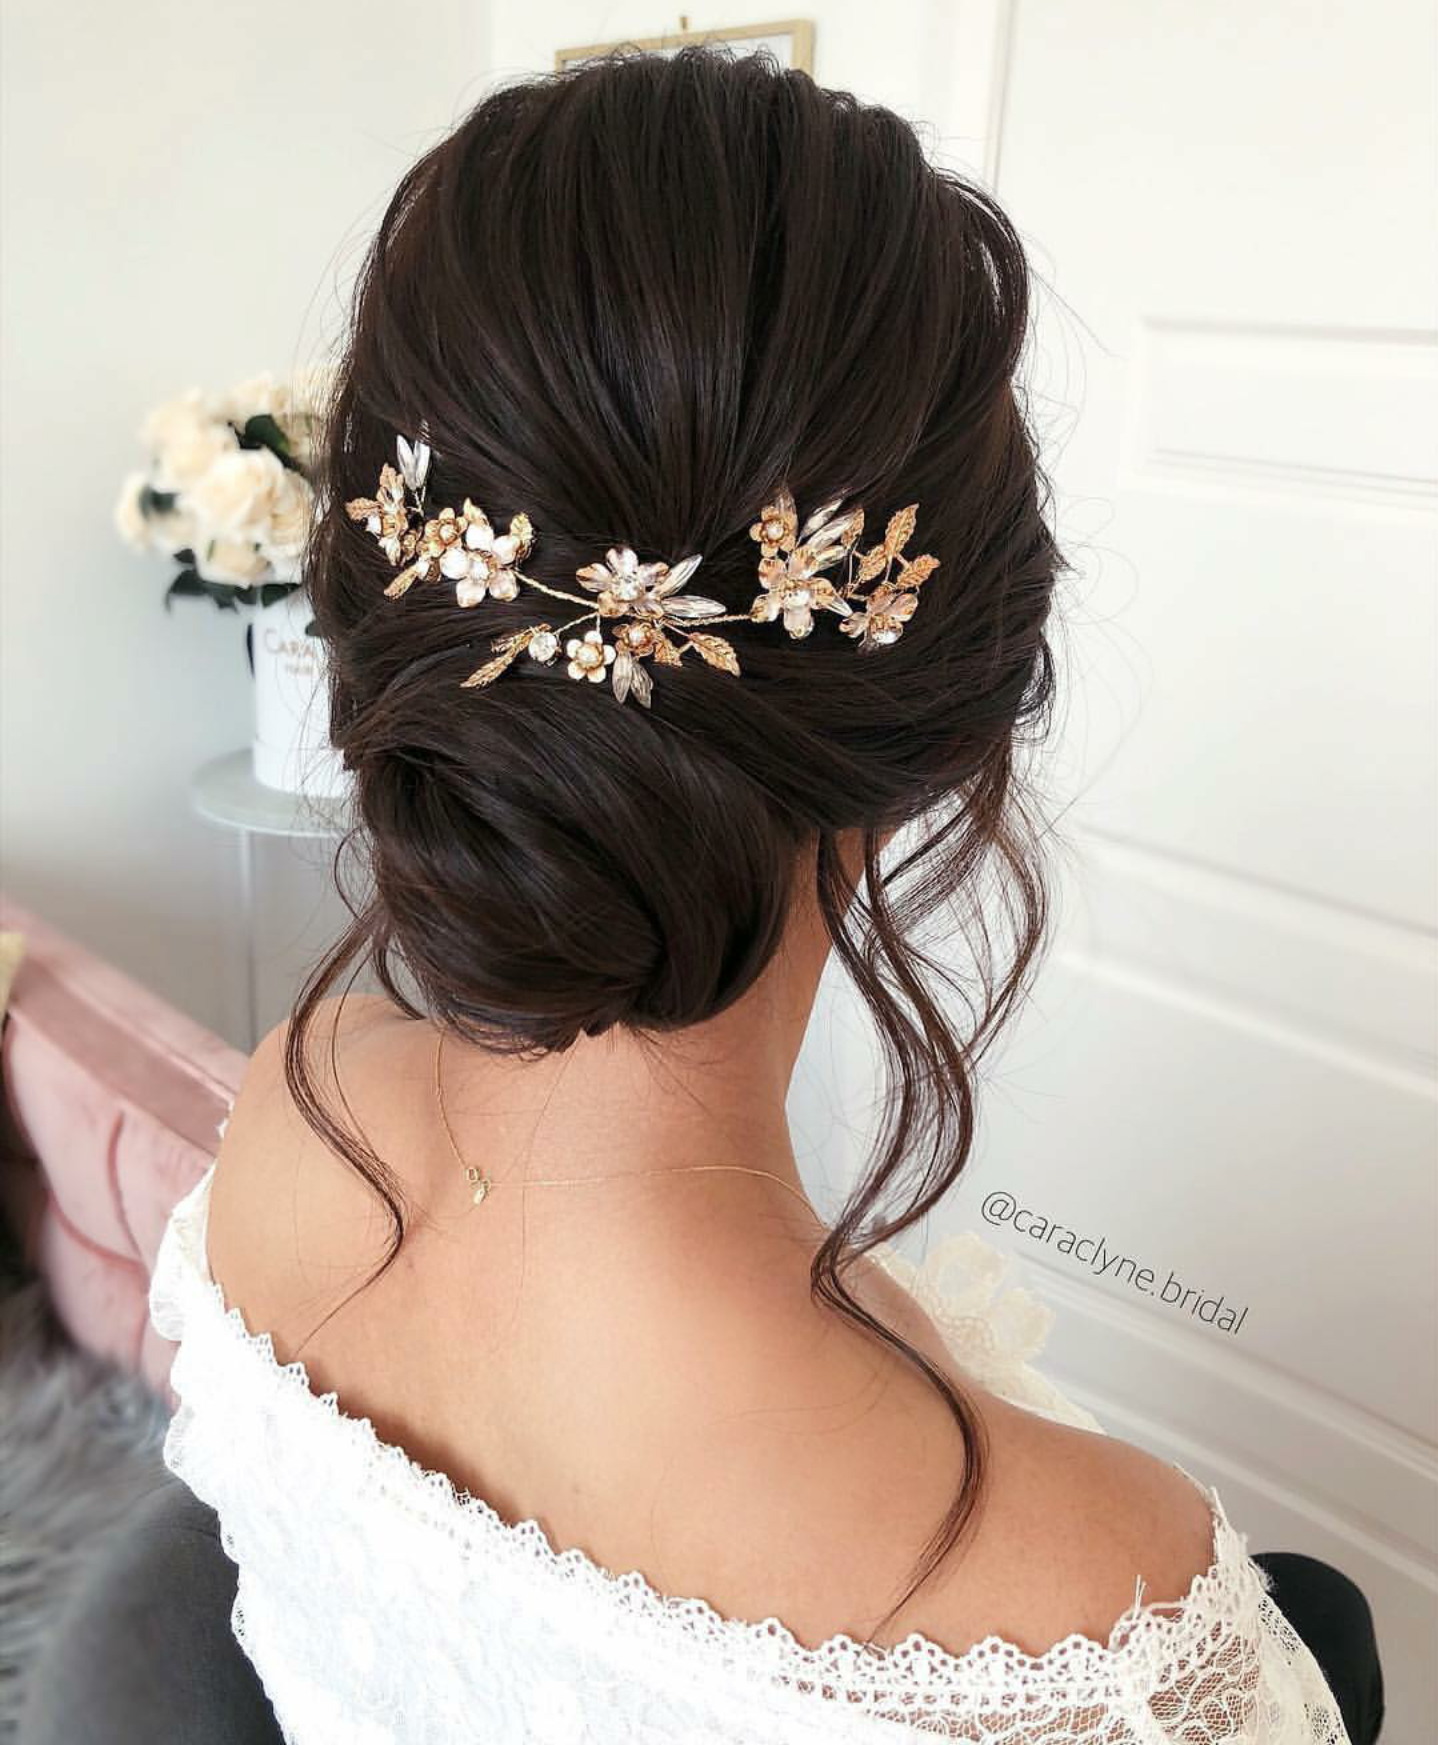 pin by prom usa on bridal beauty in 2019 | bridal hair updo